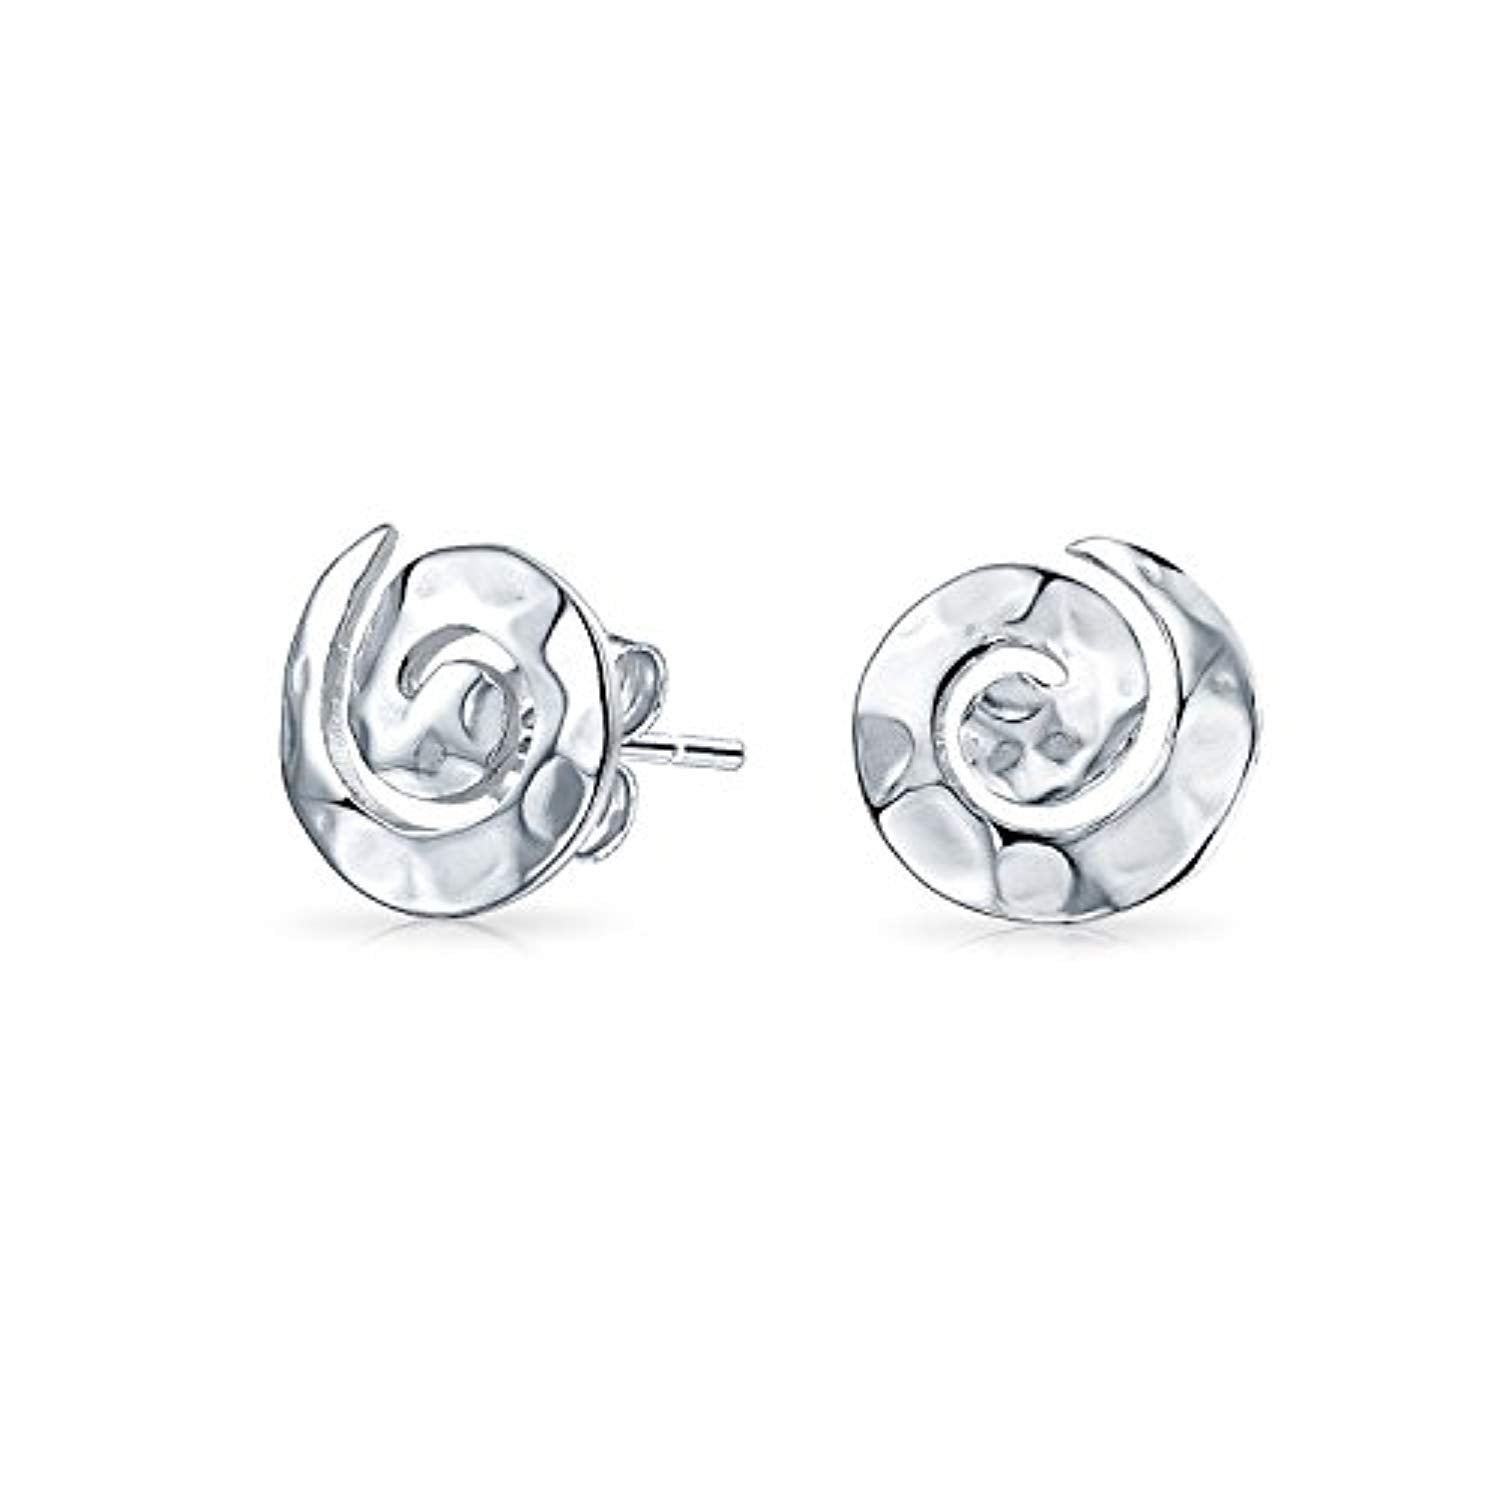 Hammered Geometric Round Spiral Swirl Small Stud Earrings For Women For Teen 925 Sterling Silver